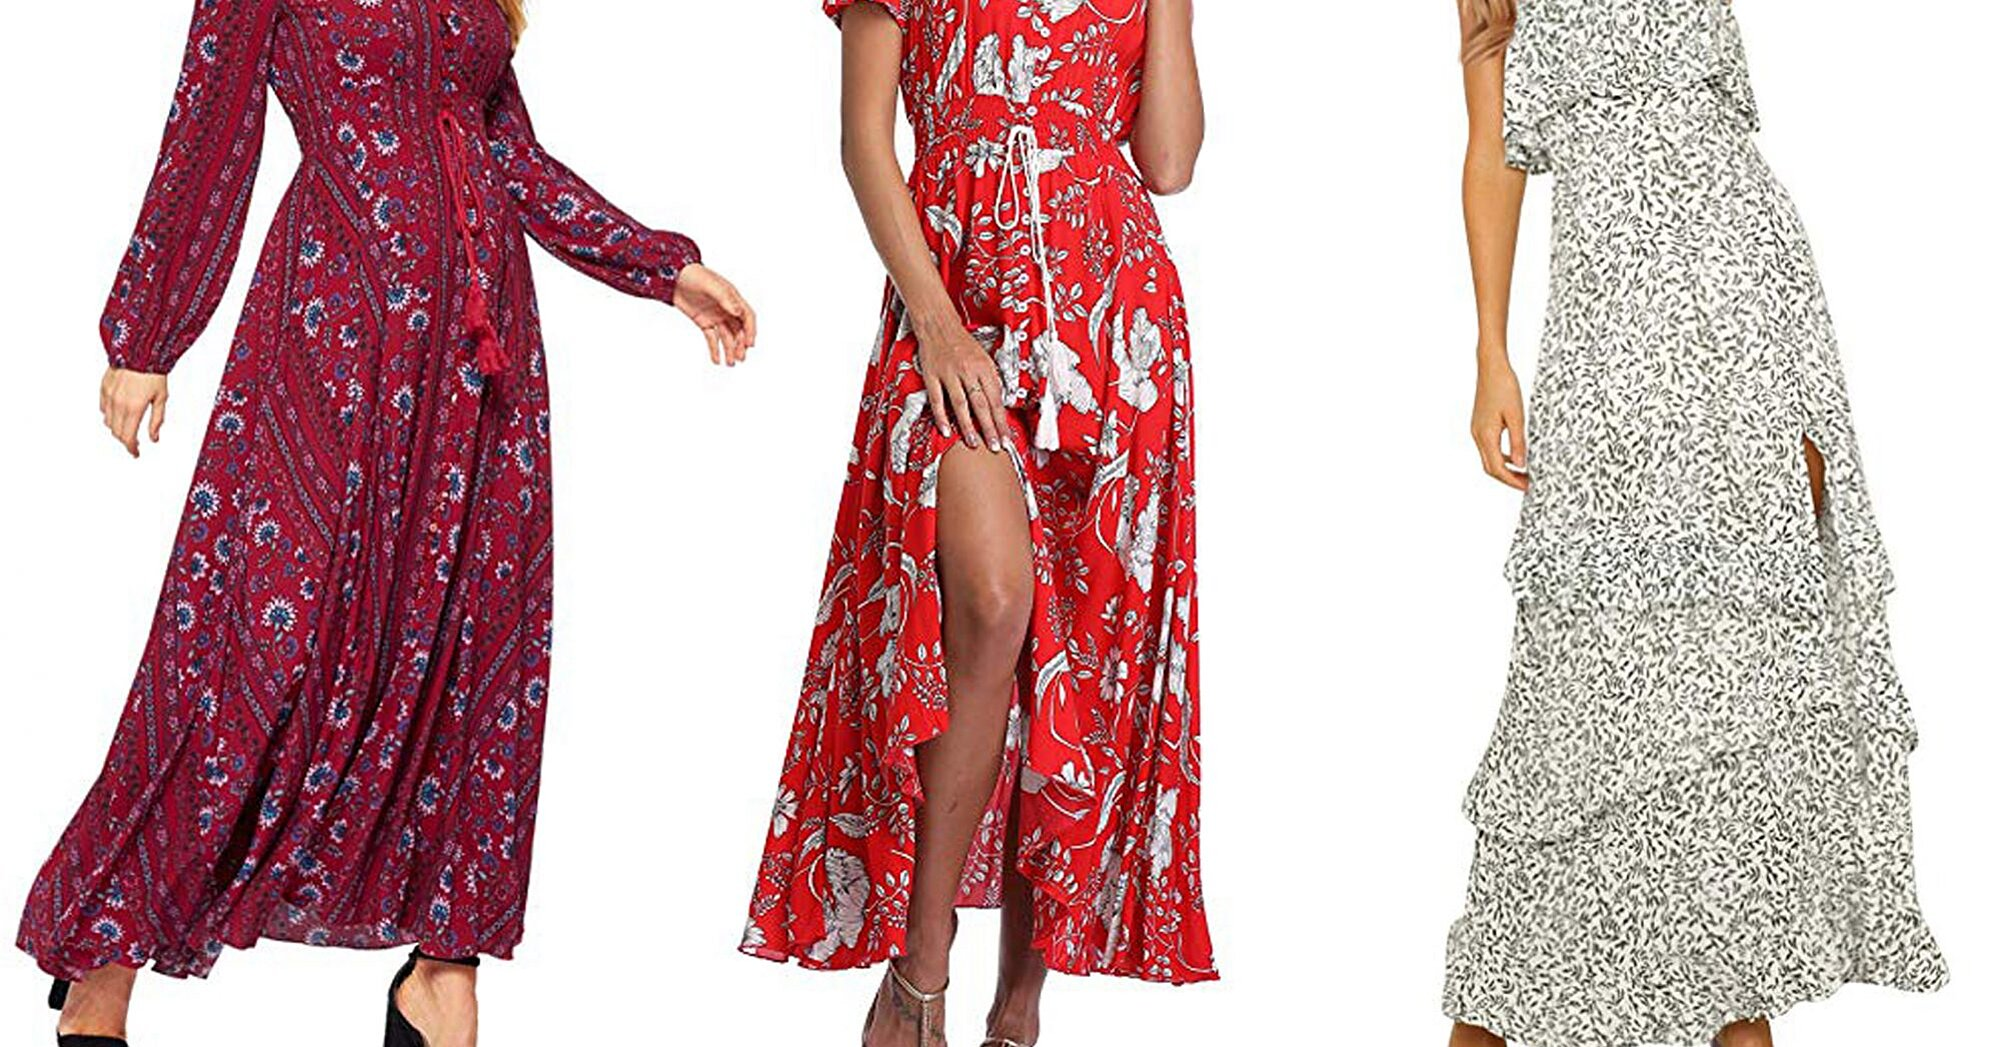 10 Best-Selling Dresses That Amazon Shoppers Can't Stop Buying — All Under $40